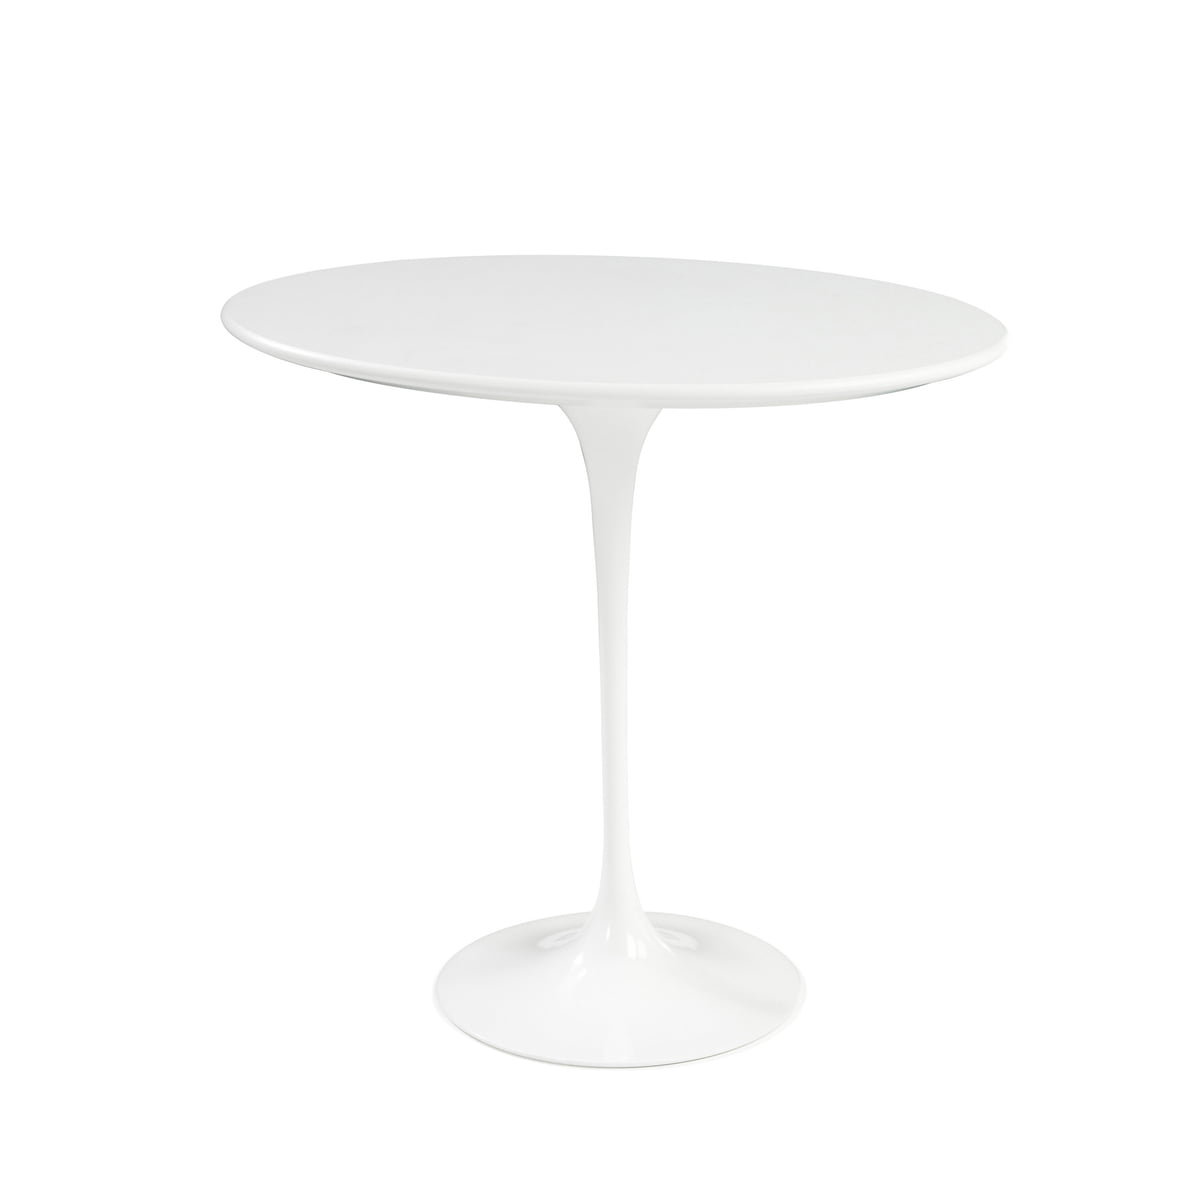 knoll saarinen tulip side table round white laminate white